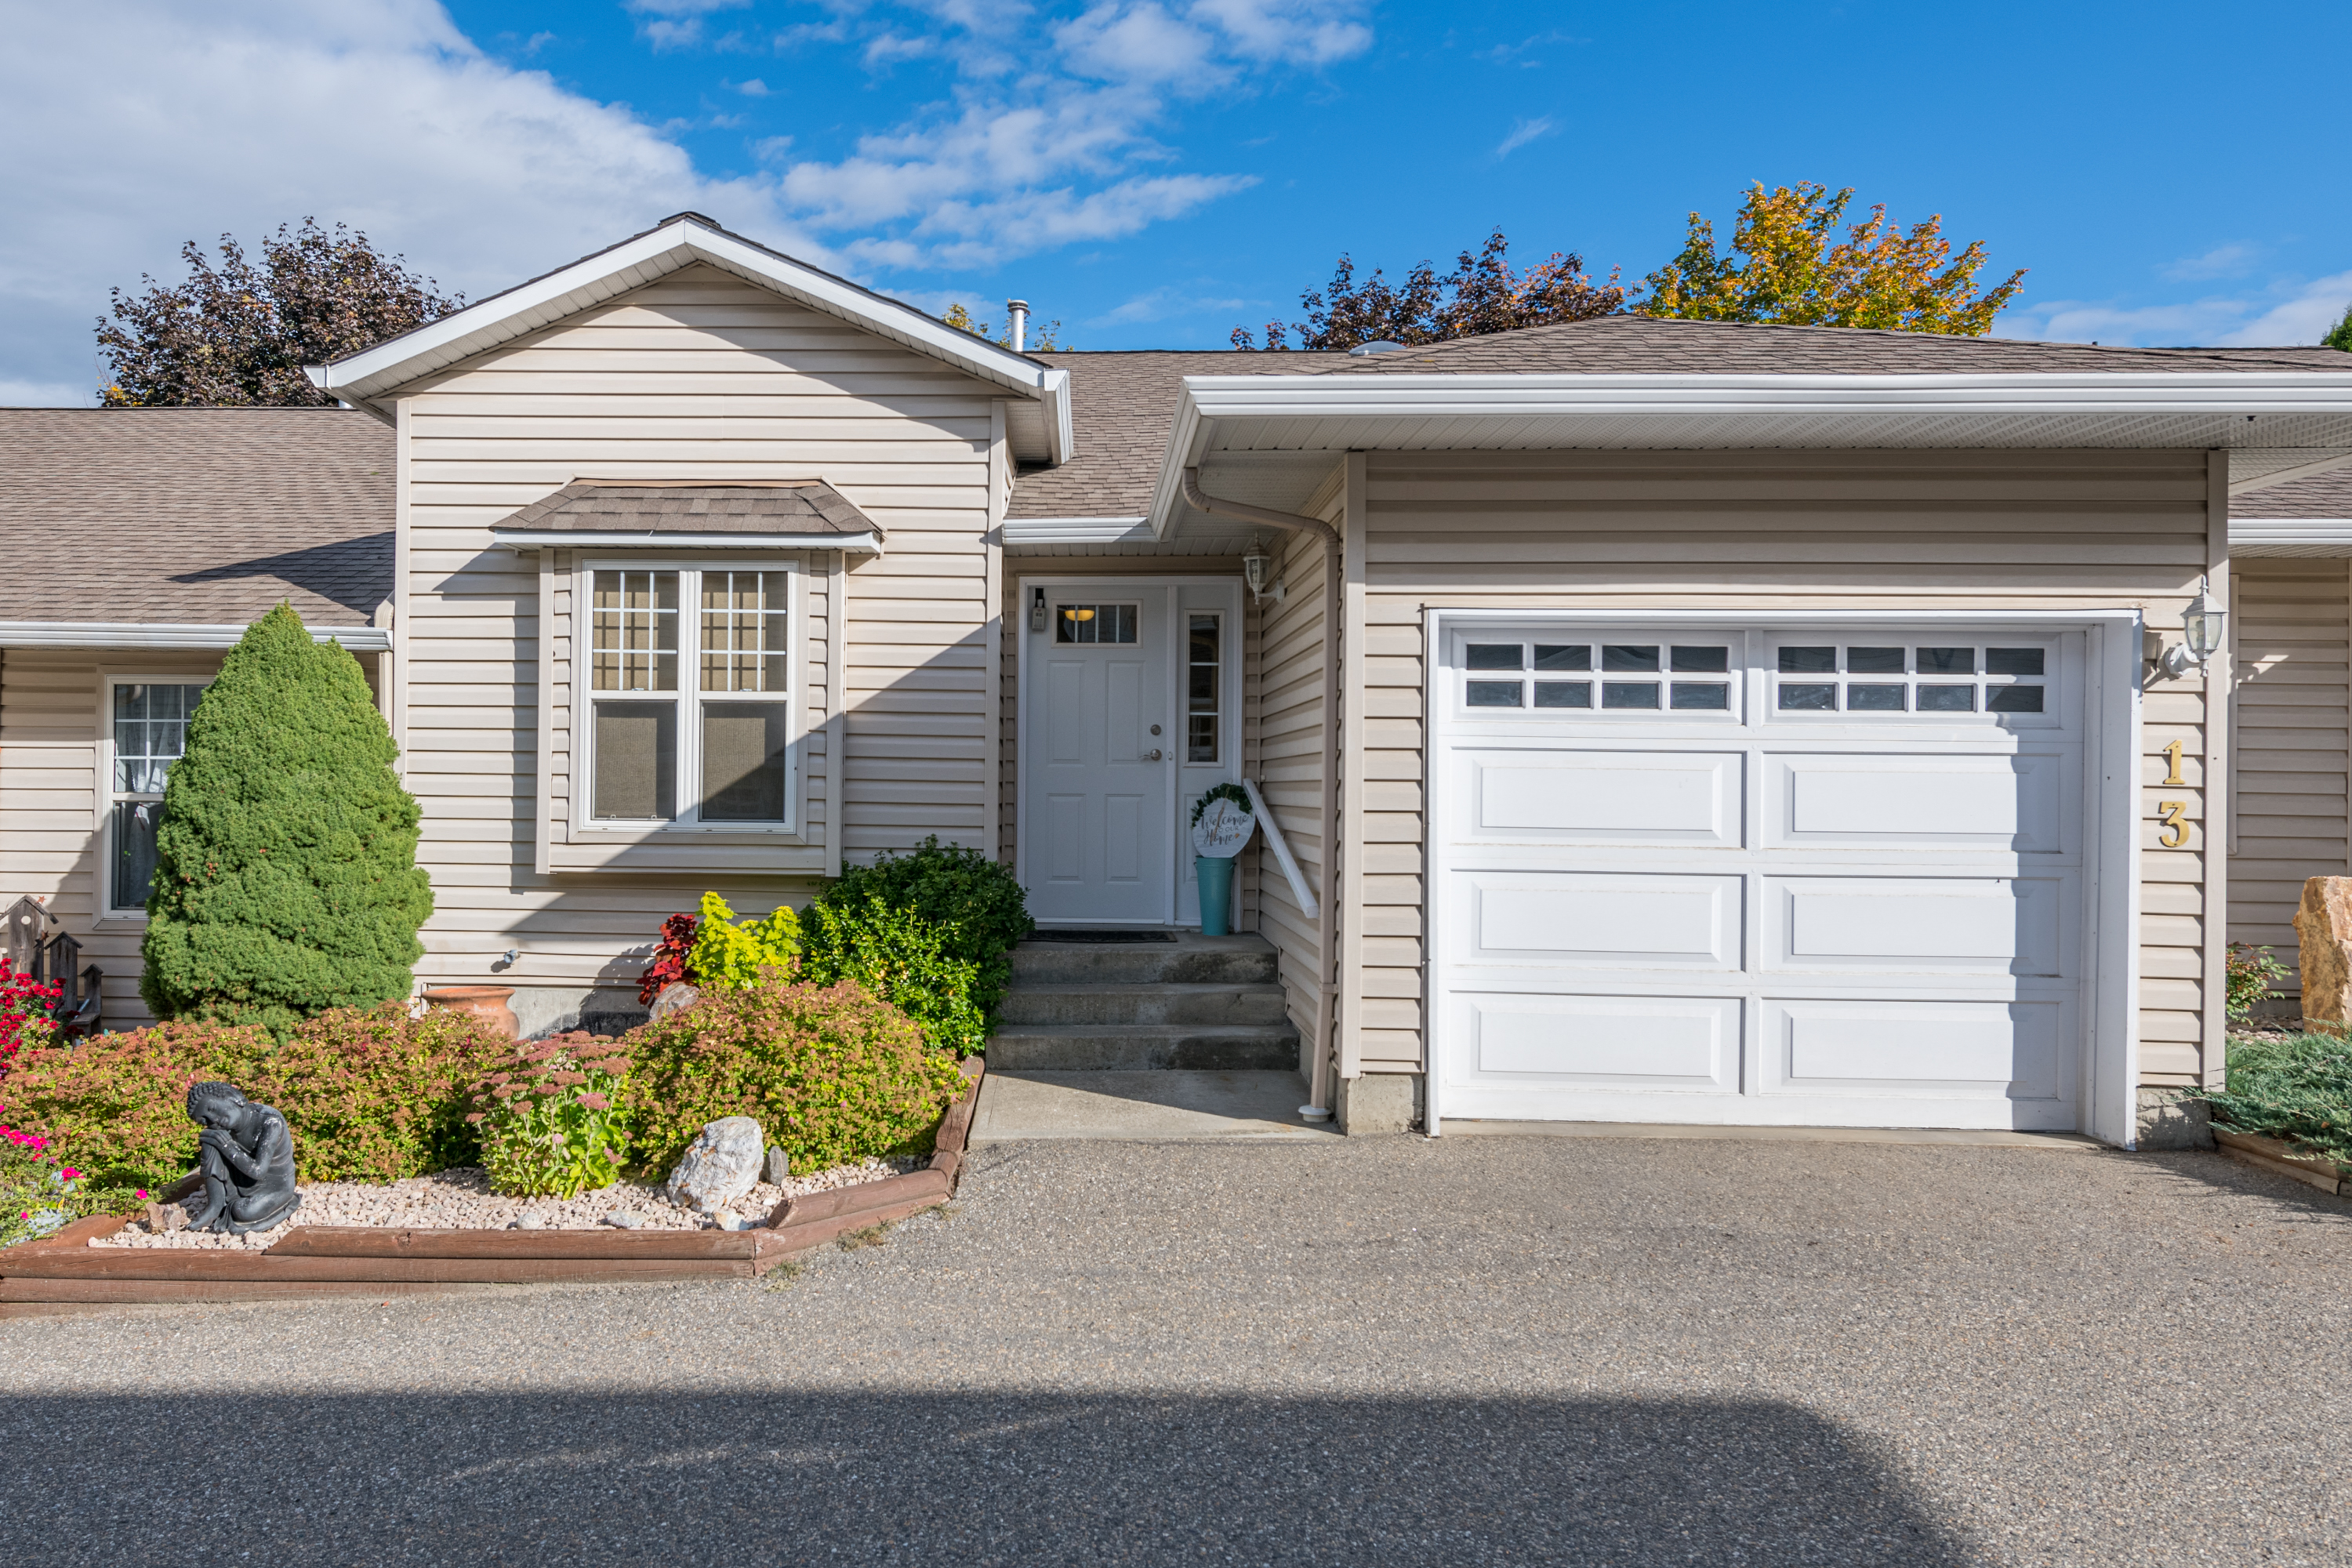 #13 3485 Rosedale Ave | Armstrong, BC | $359,000